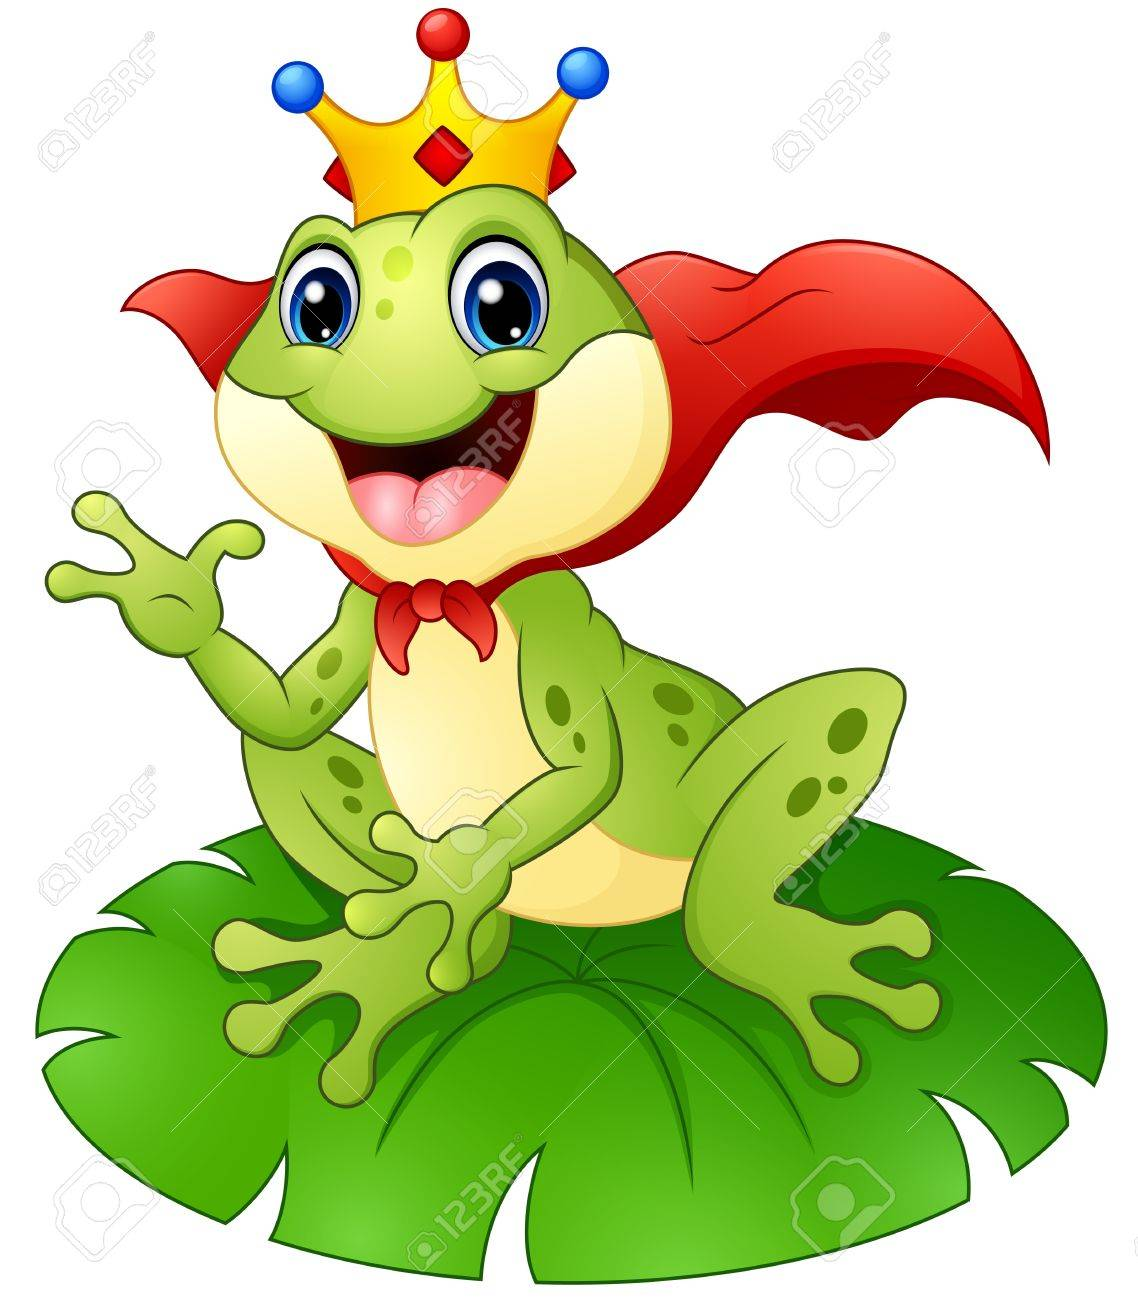 frog prince cartoon on water lily leaf royalty free cliparts rh 123rf com Leaping Frog Clip Art Tree Frog Vector